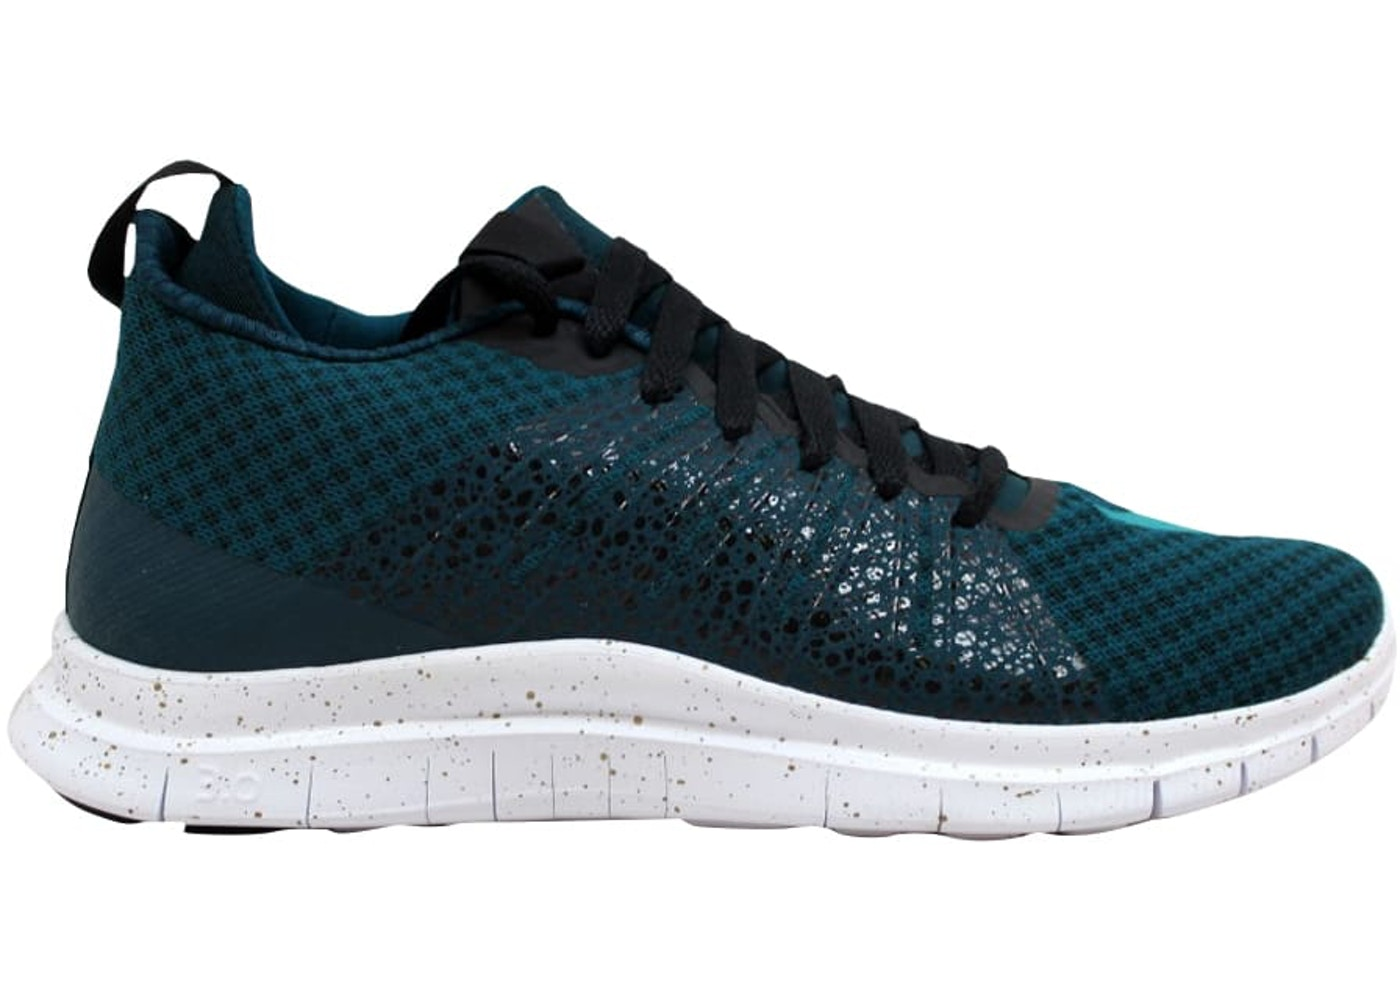 separation shoes 3ea7d 9f7f4 Nike Free Hypervenom 2 FC Midnight Turquoise/Rio Teal-Black-White